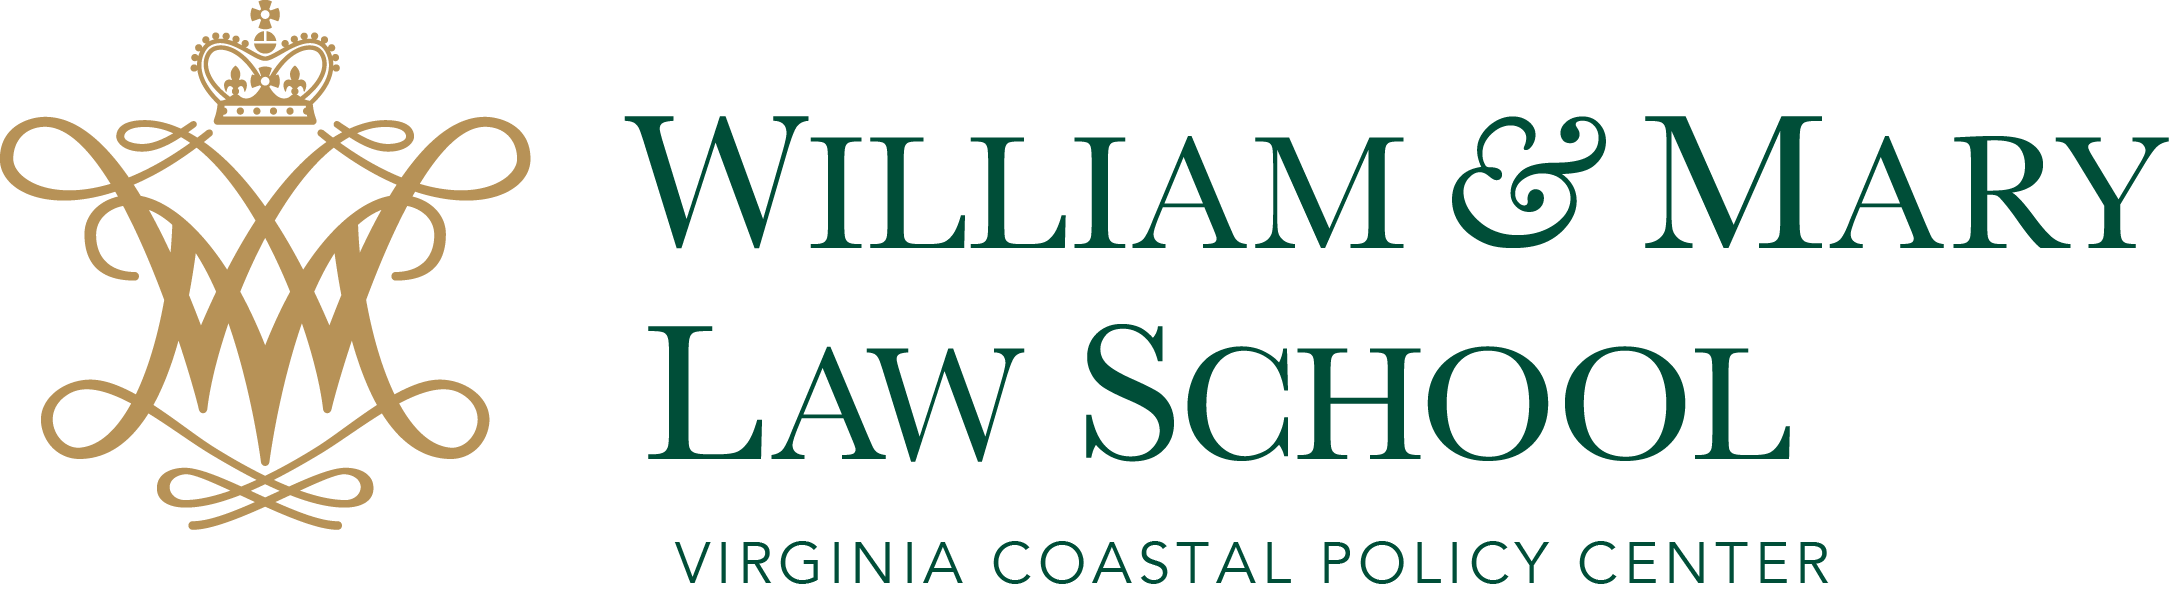 Virginia Coastal Policy Center